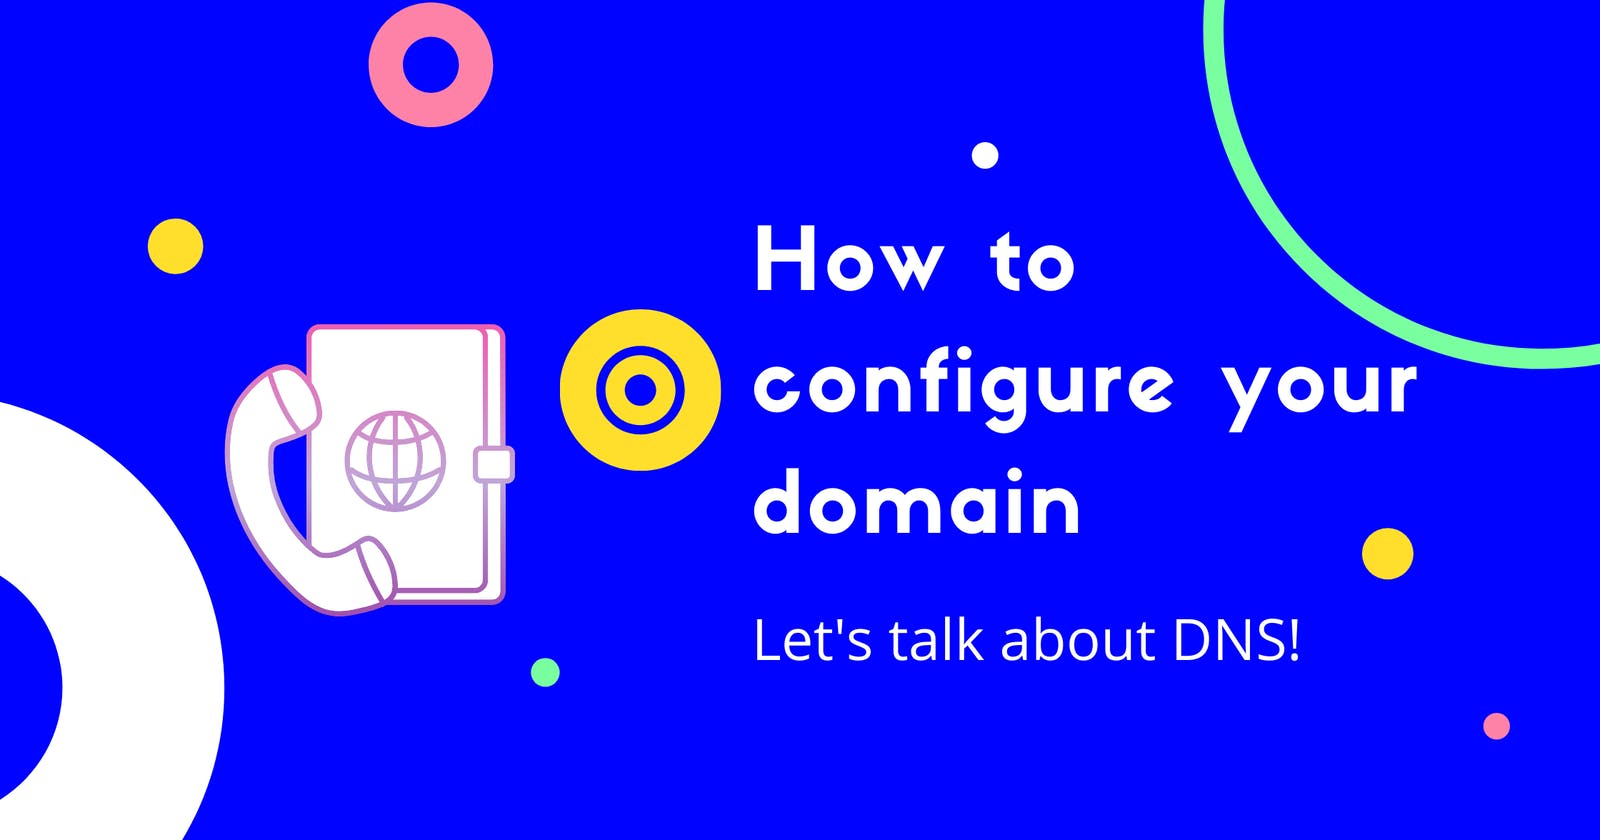 How to configure your domain